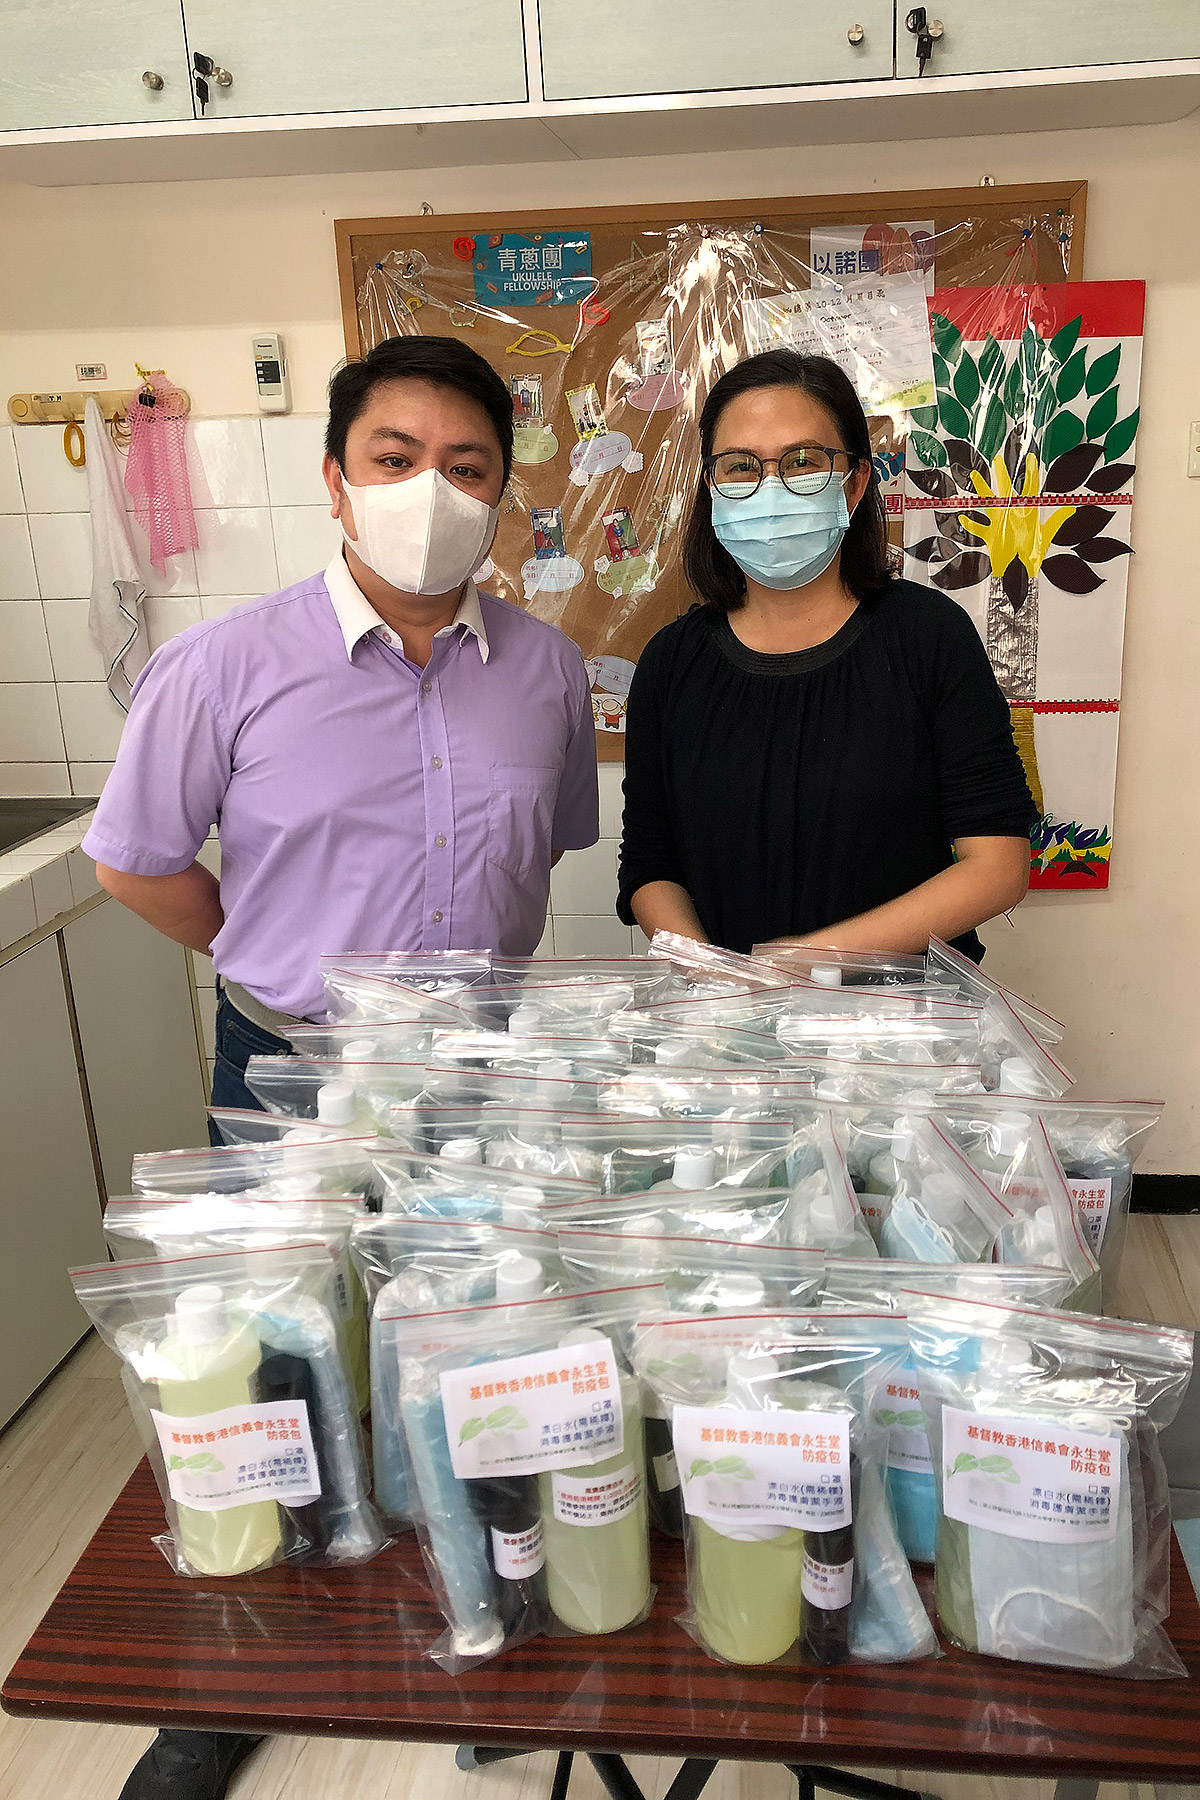 Rev. Ken Leung, pastor of the Eternal Life Lutheran Church, and a volunteer with supplies of hand sanitizer, masks and other hygiene products ready for distribution